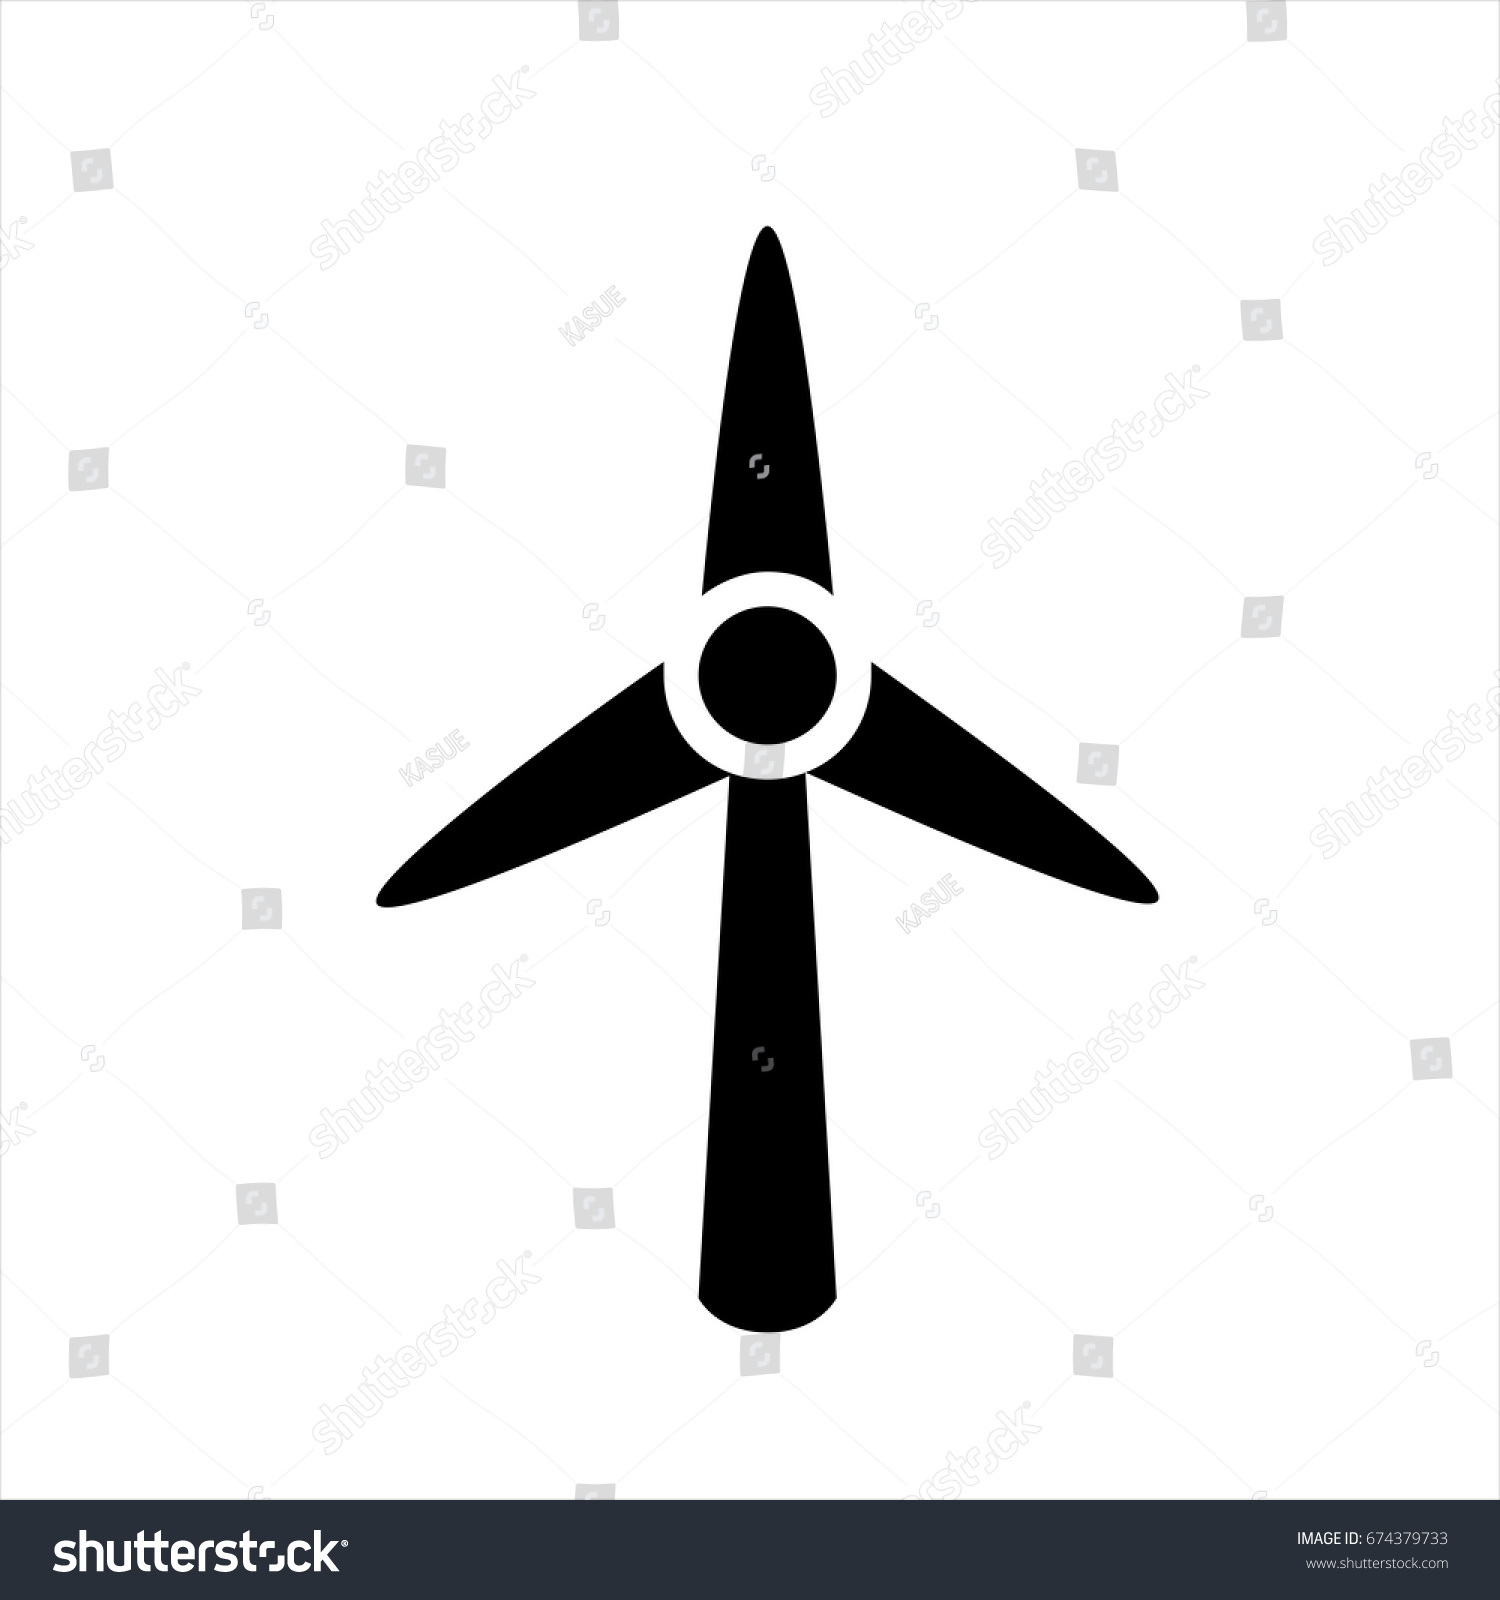 Sind Generator Icon Trendy Flat Style Stock Vector (2018) 674379733 ...